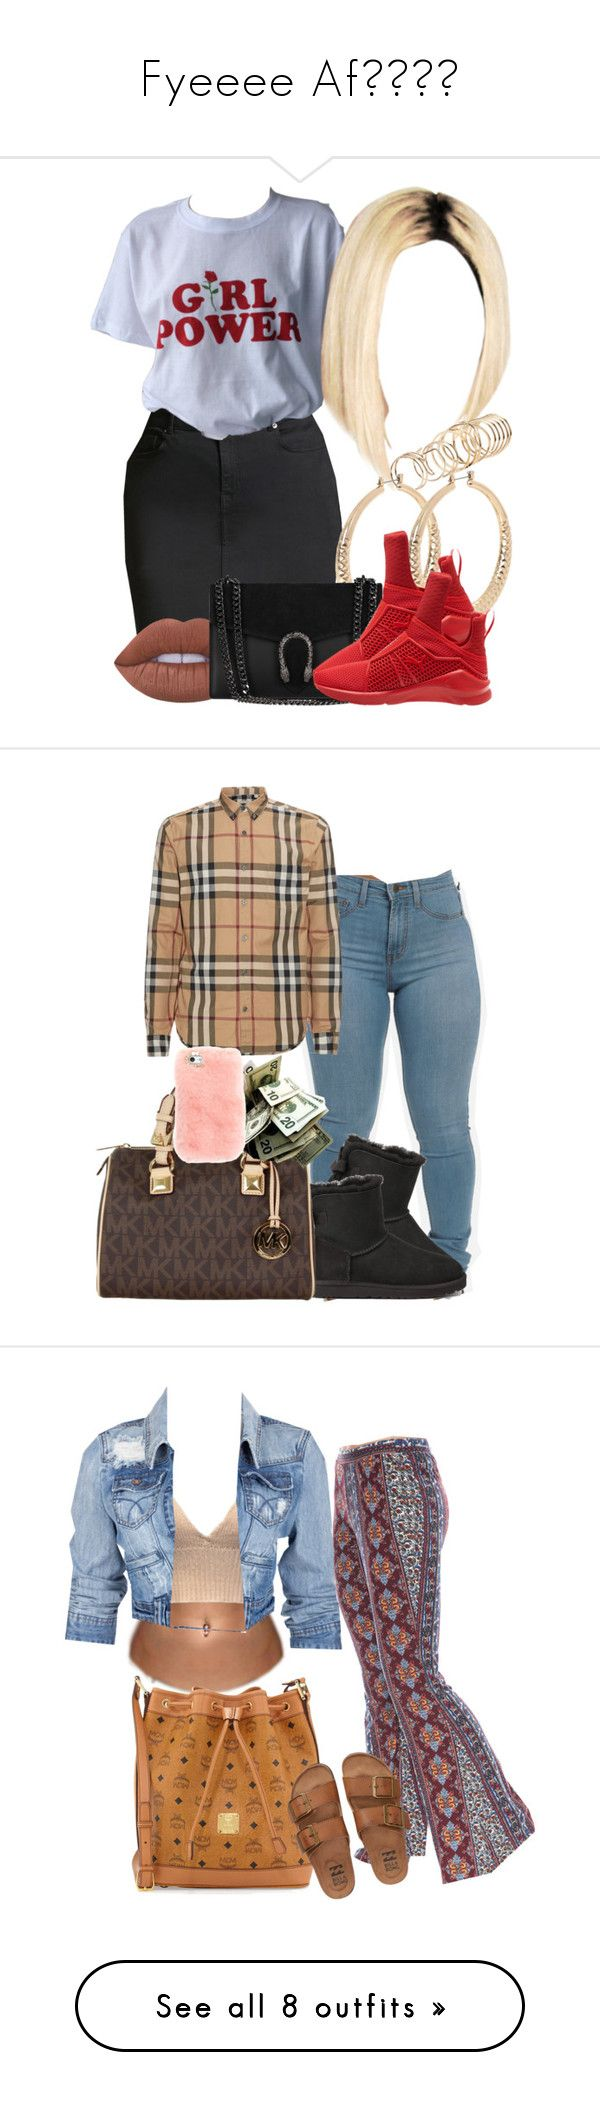 """""""Fyeeee Af👌🏾😍🔥"""" by yungjazzyhoe ❤ liked on Polyvore featuring Forever 21, ALDO, Lime Crime, Puma, Burberry, UGG Australia, MICHAEL Michael Kors, MCM, Soul Cal and Grayson"""